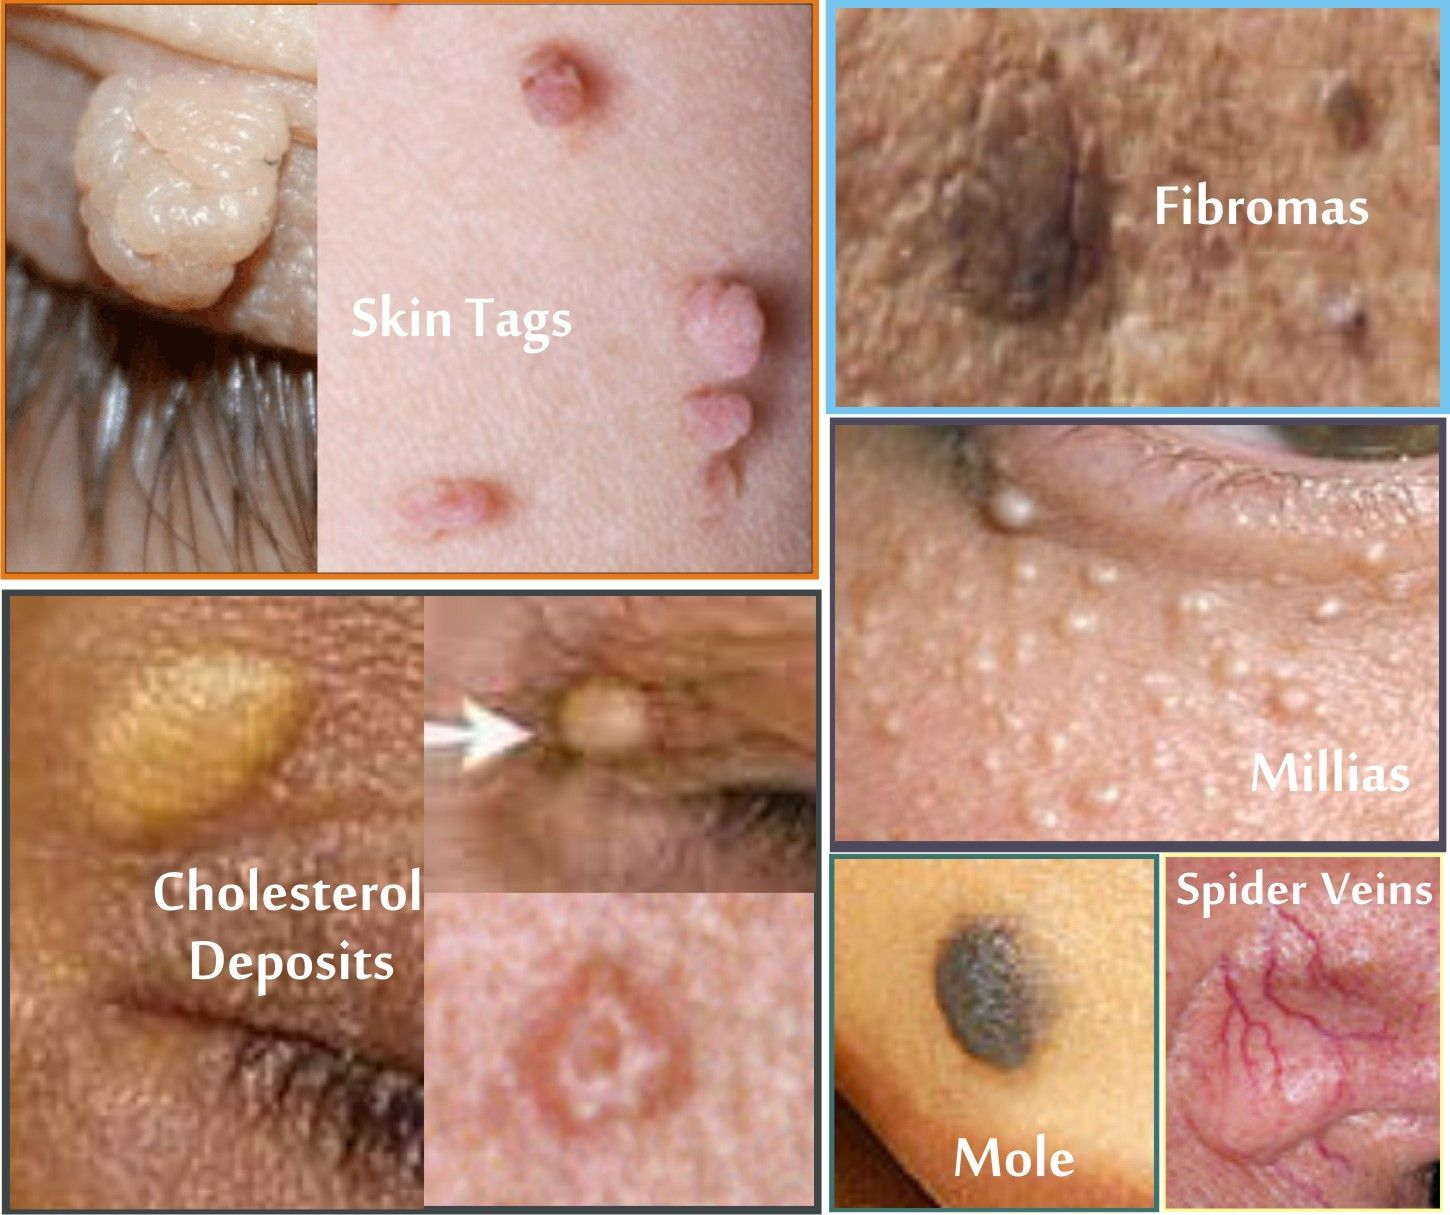 papilloma and moles